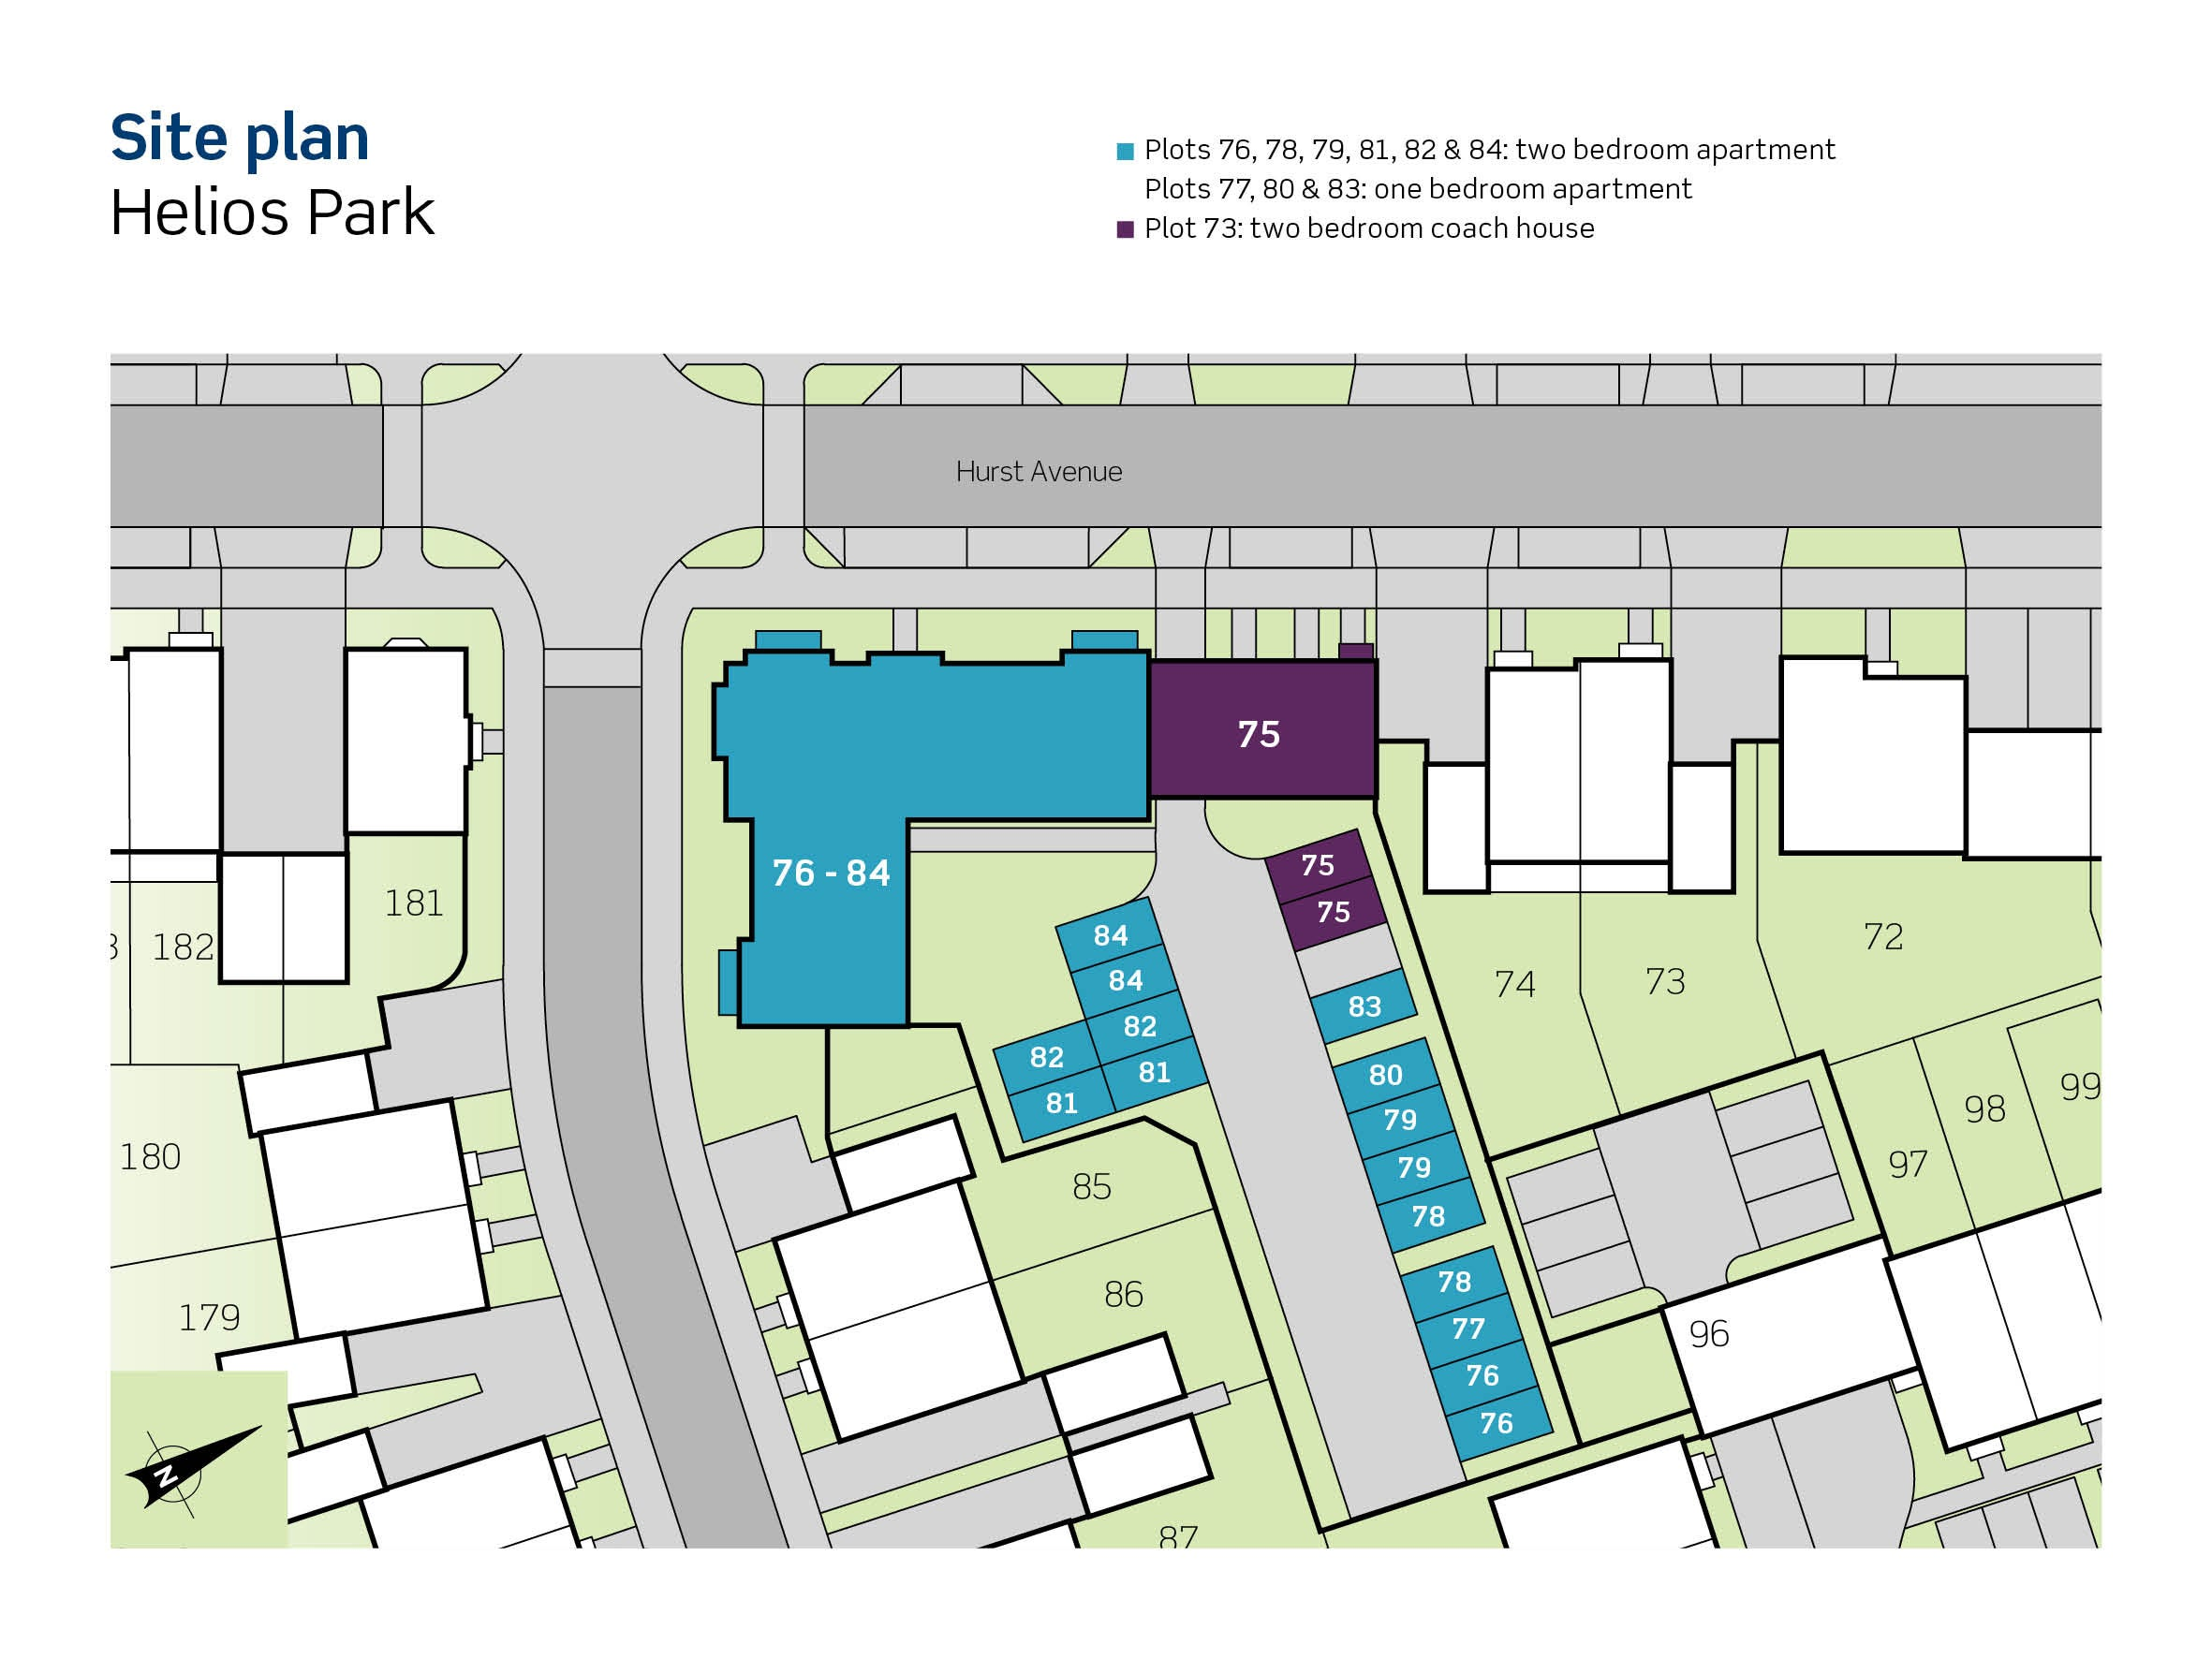 Image of site plan for Phase 2 at Helios Park